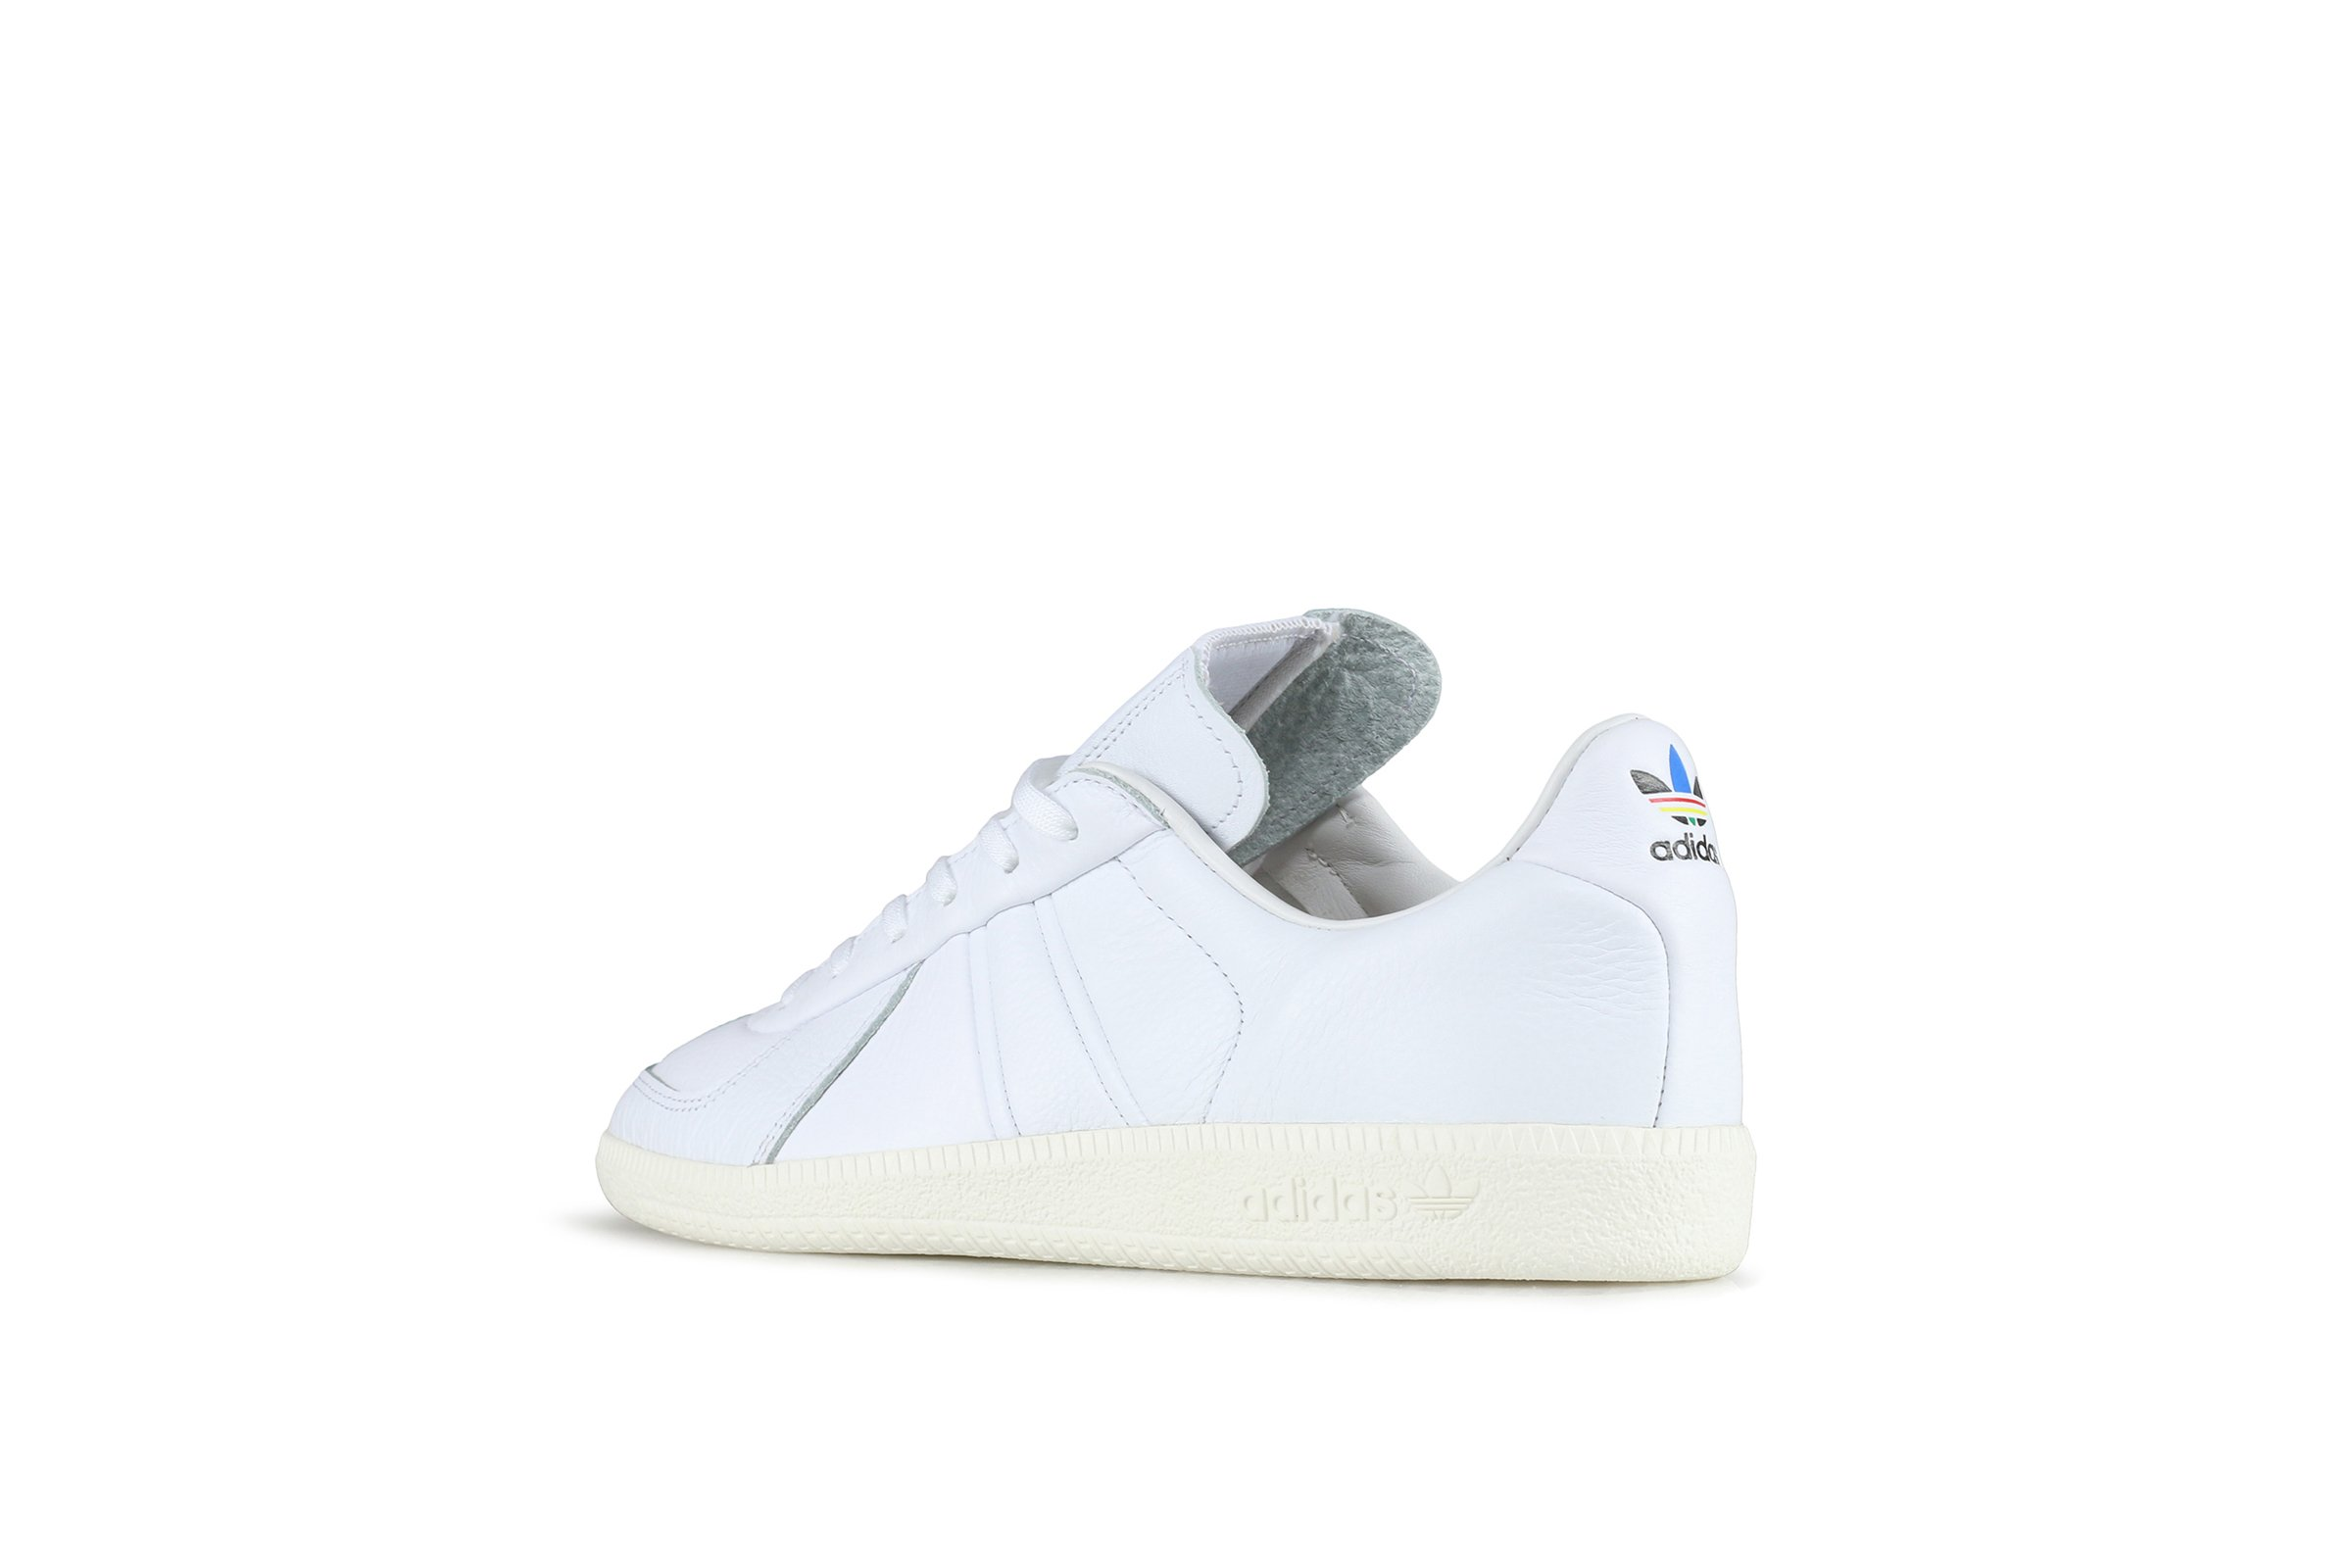 6590771df The Adidas x Oyster Holdings BW Army trainers are available here at Hanon.